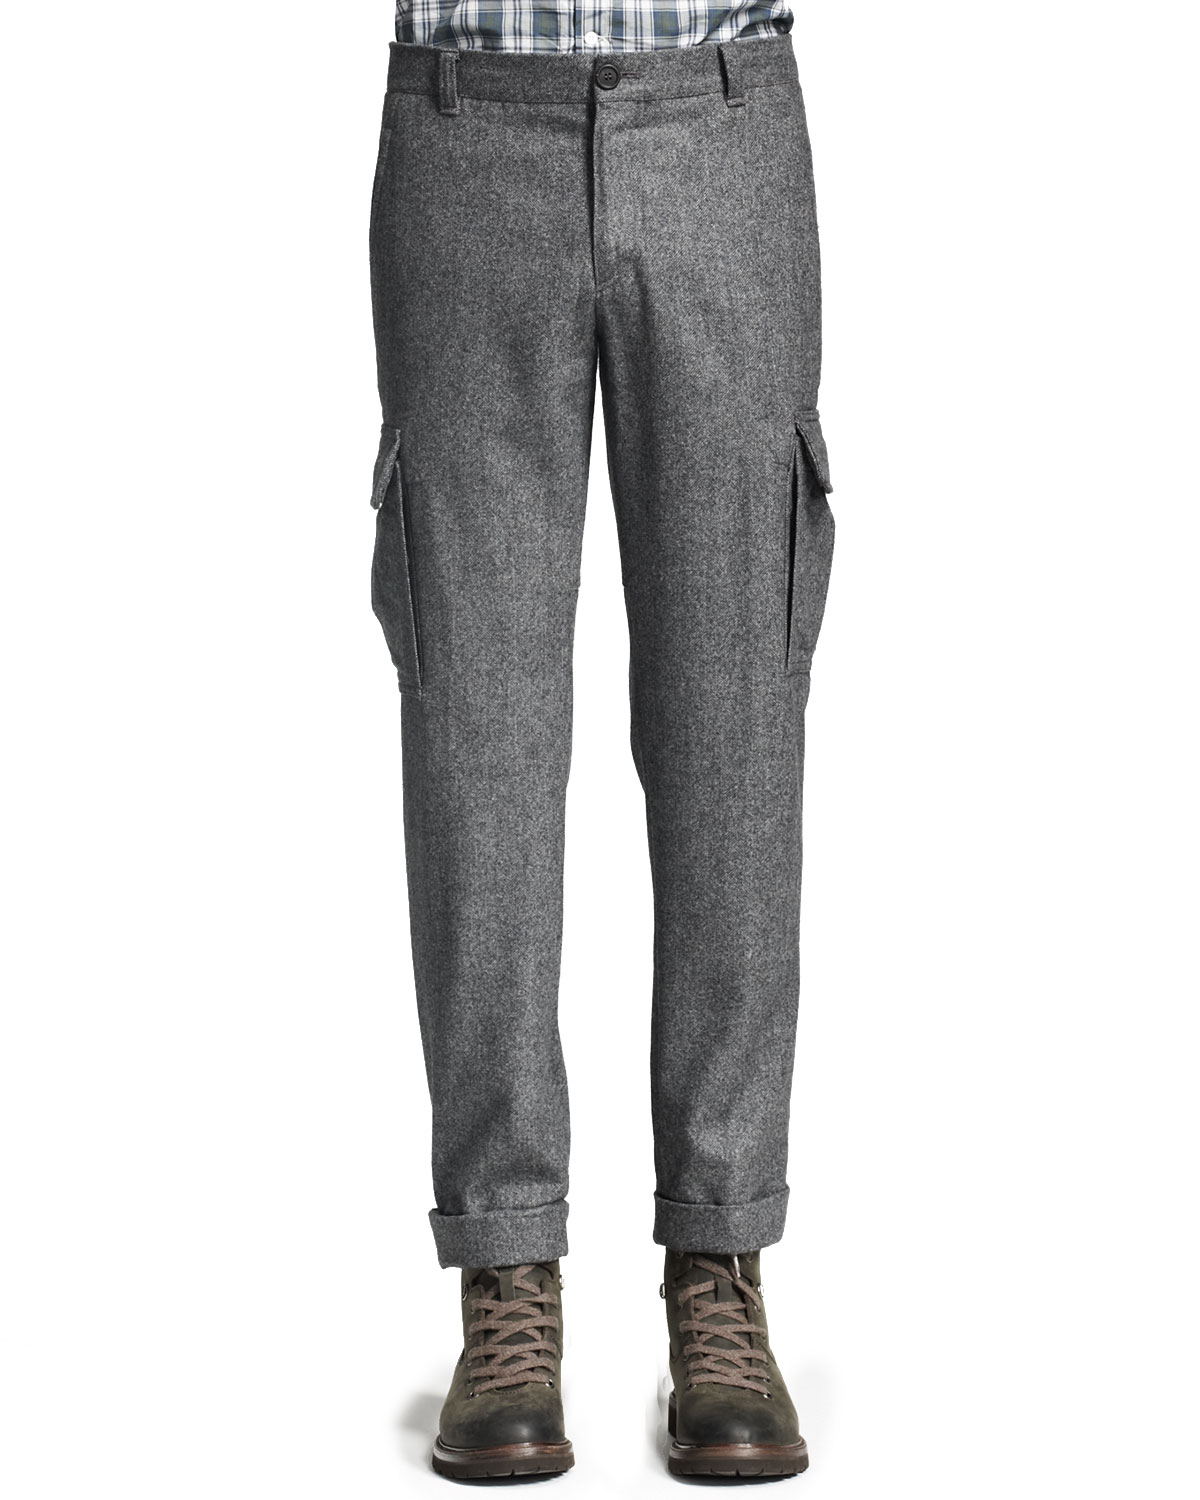 Mens Wool Cargo Pants